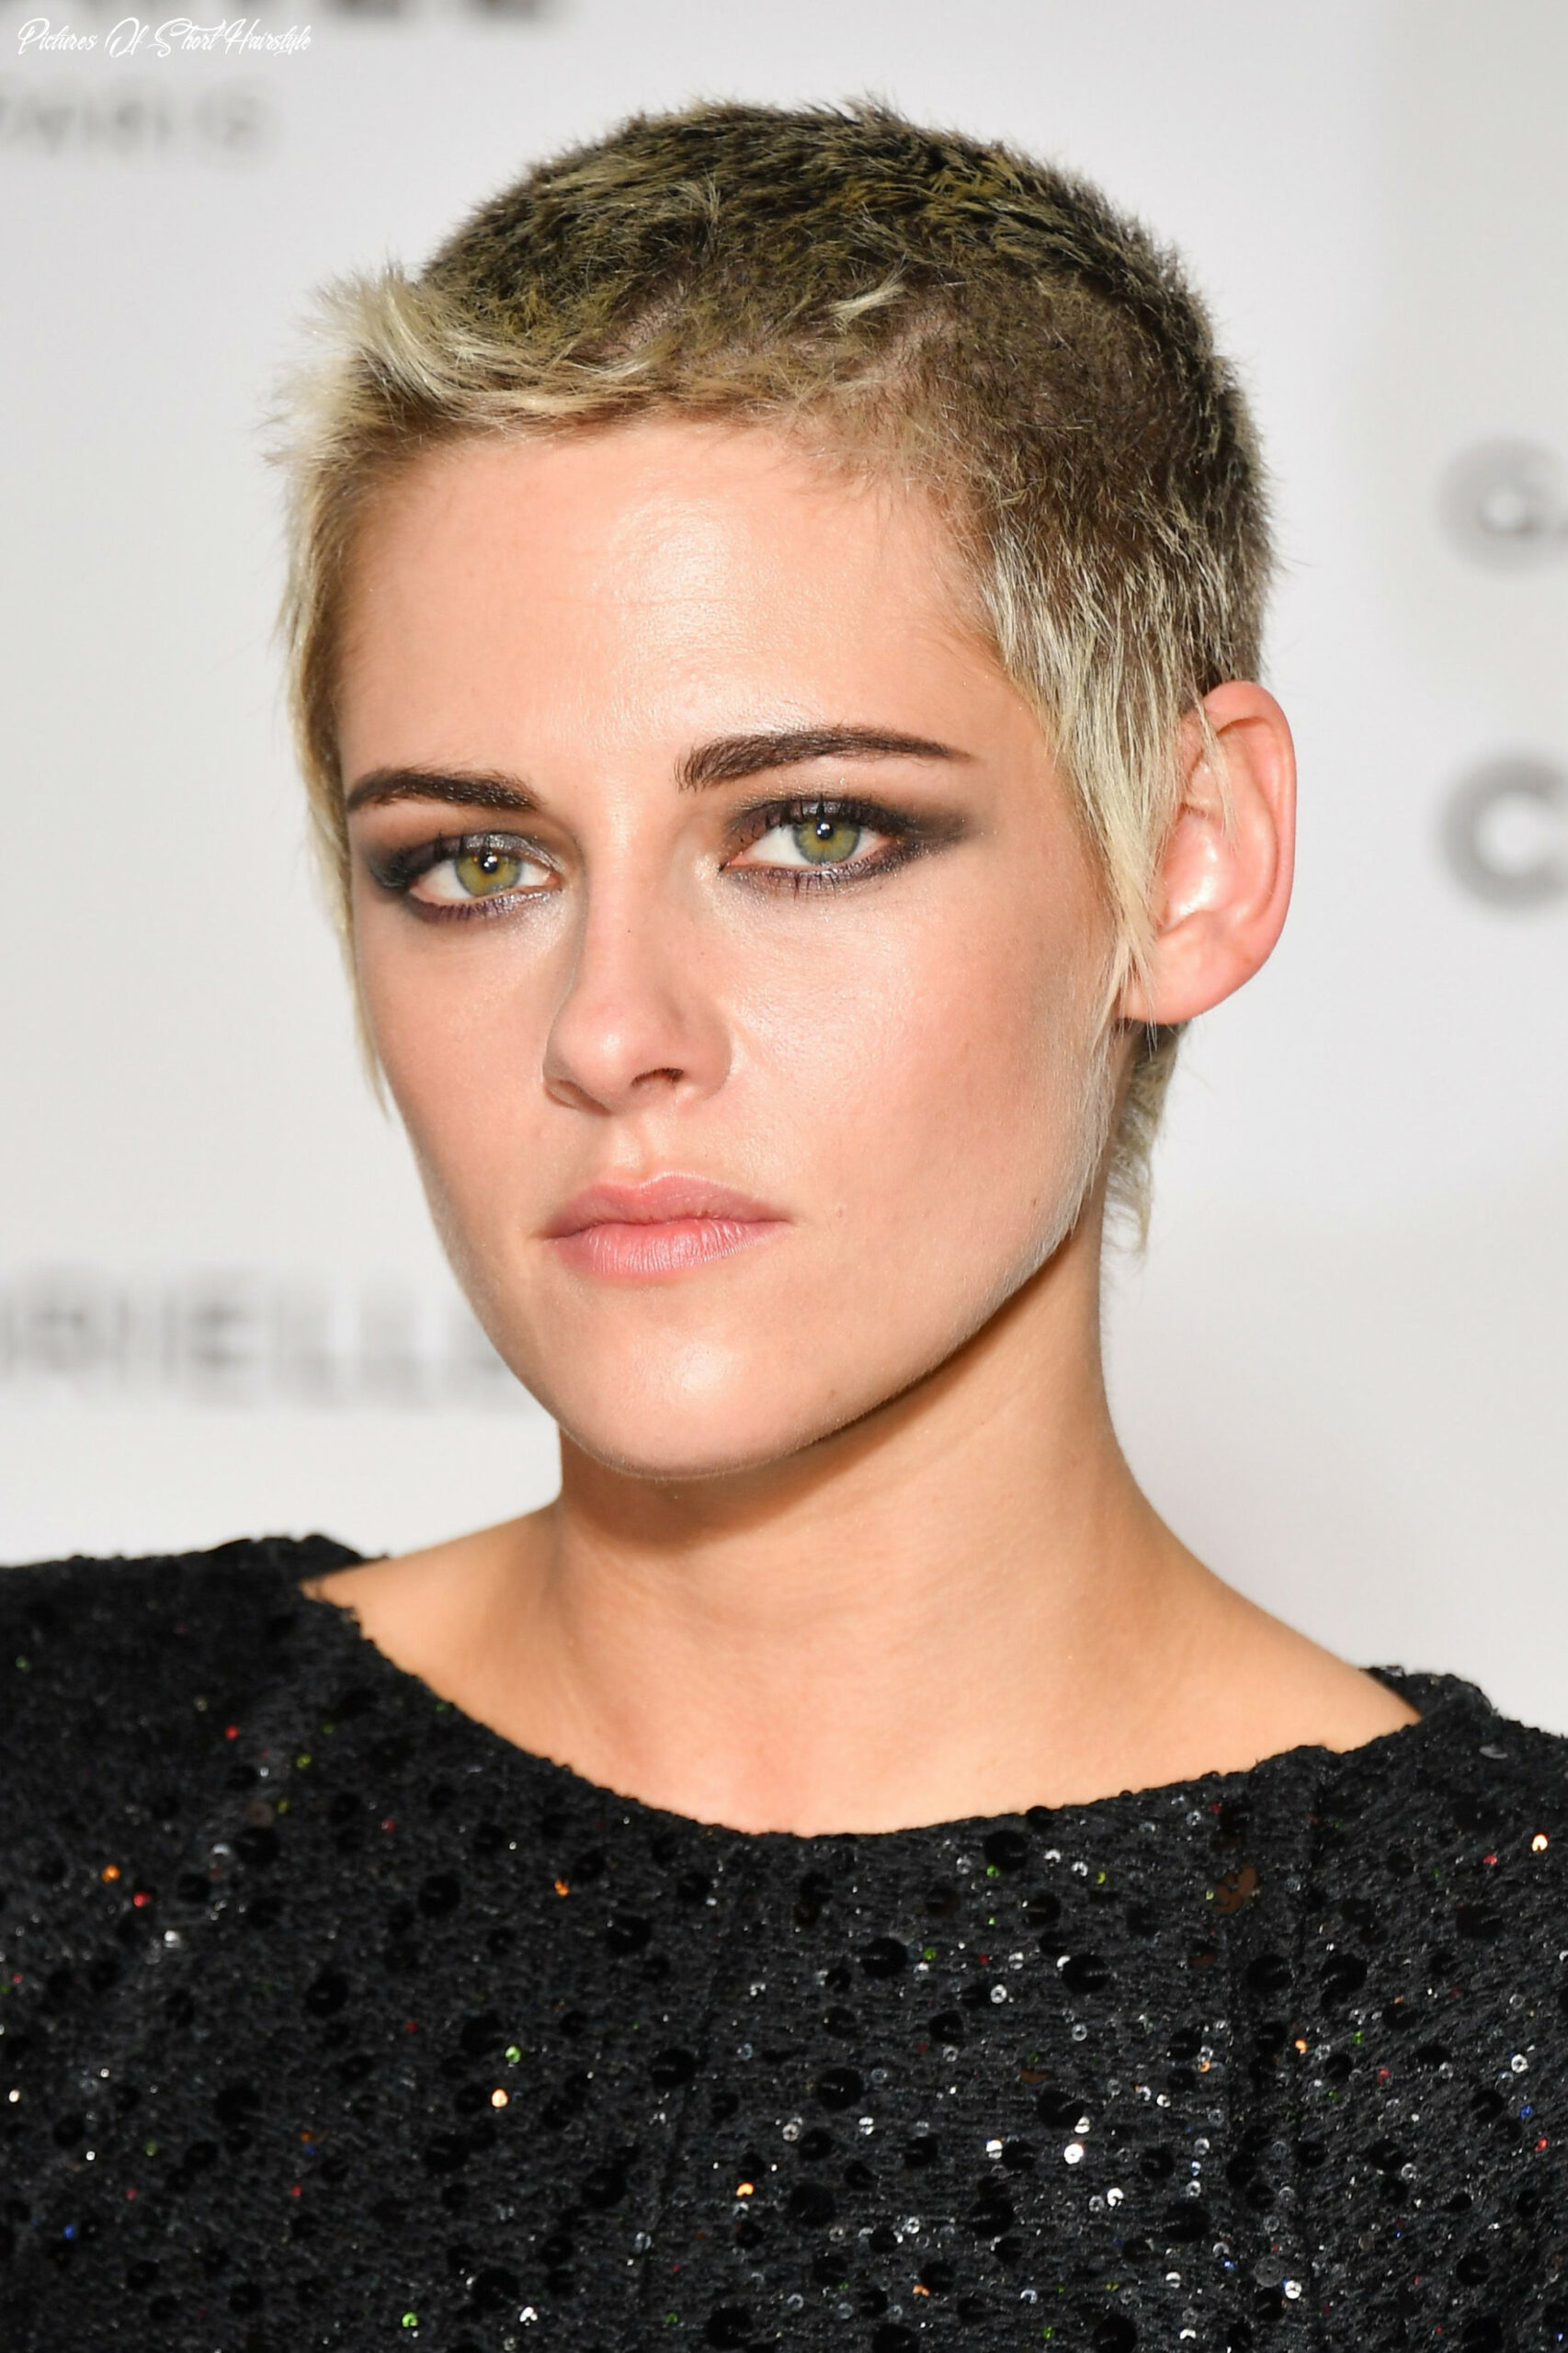 11 cute short hairstyles for women how to style short haircuts pictures of short hairstyle